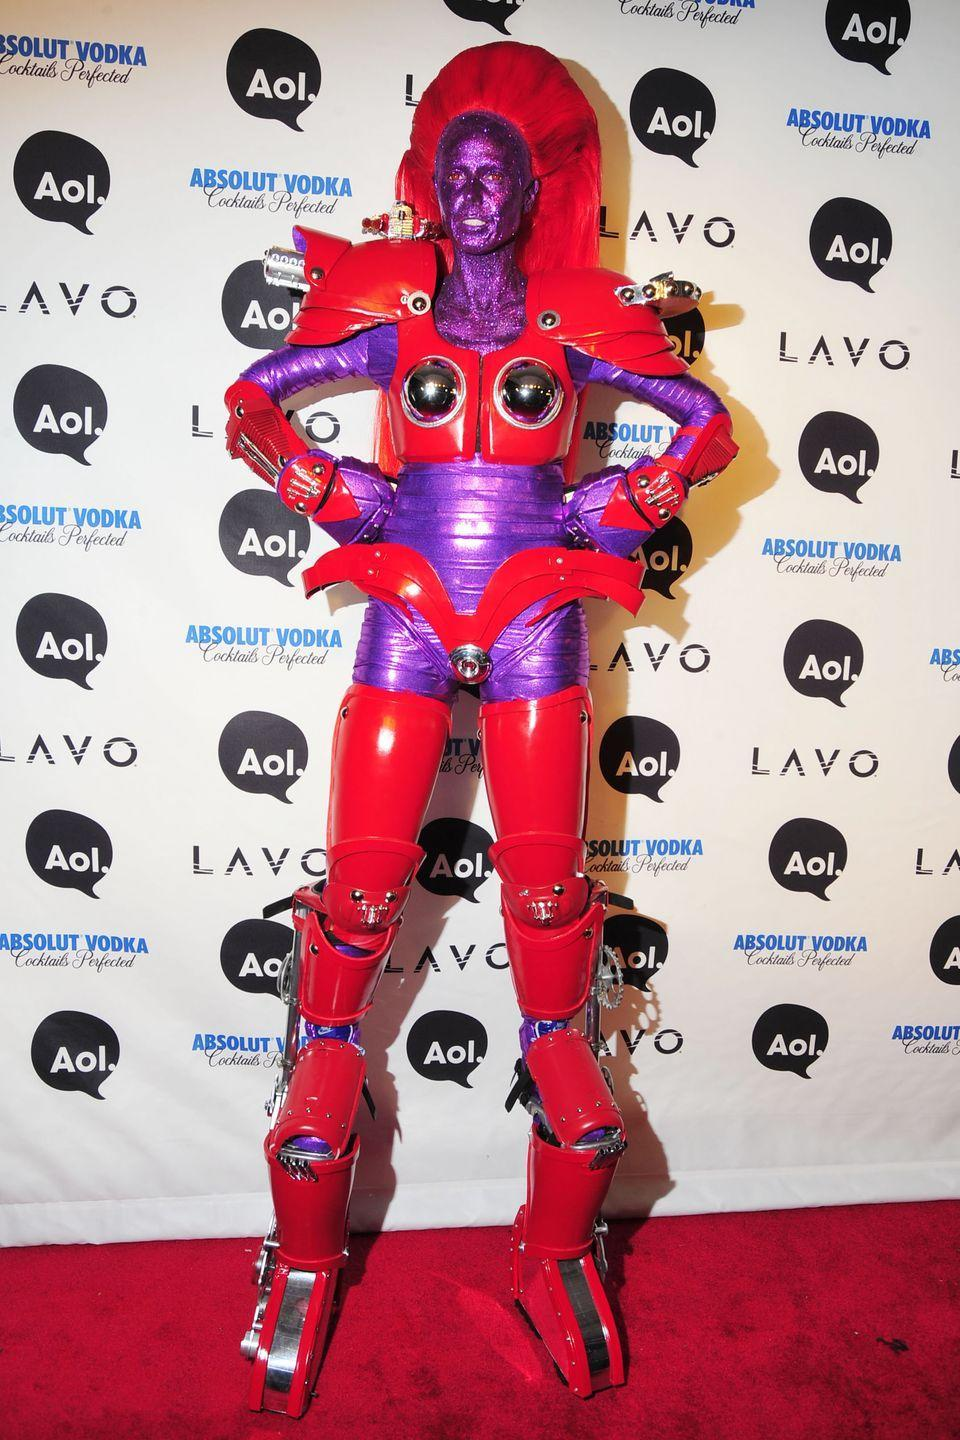 <p>Kudos to Heidi for walking down an entire red carpet on stilts. Oh, and for covering her entire body in purple latex. </p>